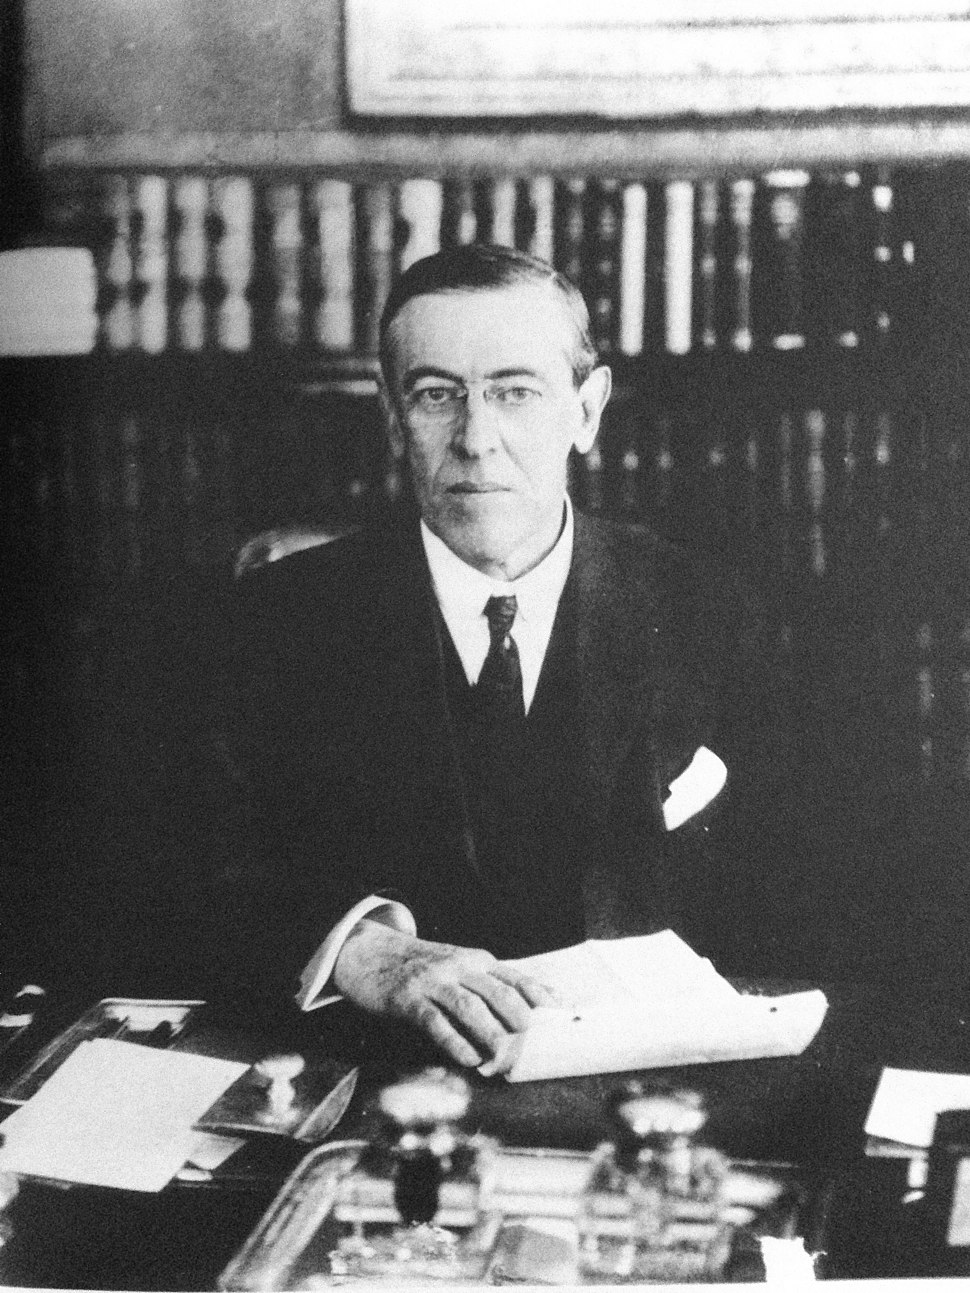 Woodrow Wilson, New Jersey Governor - 1911